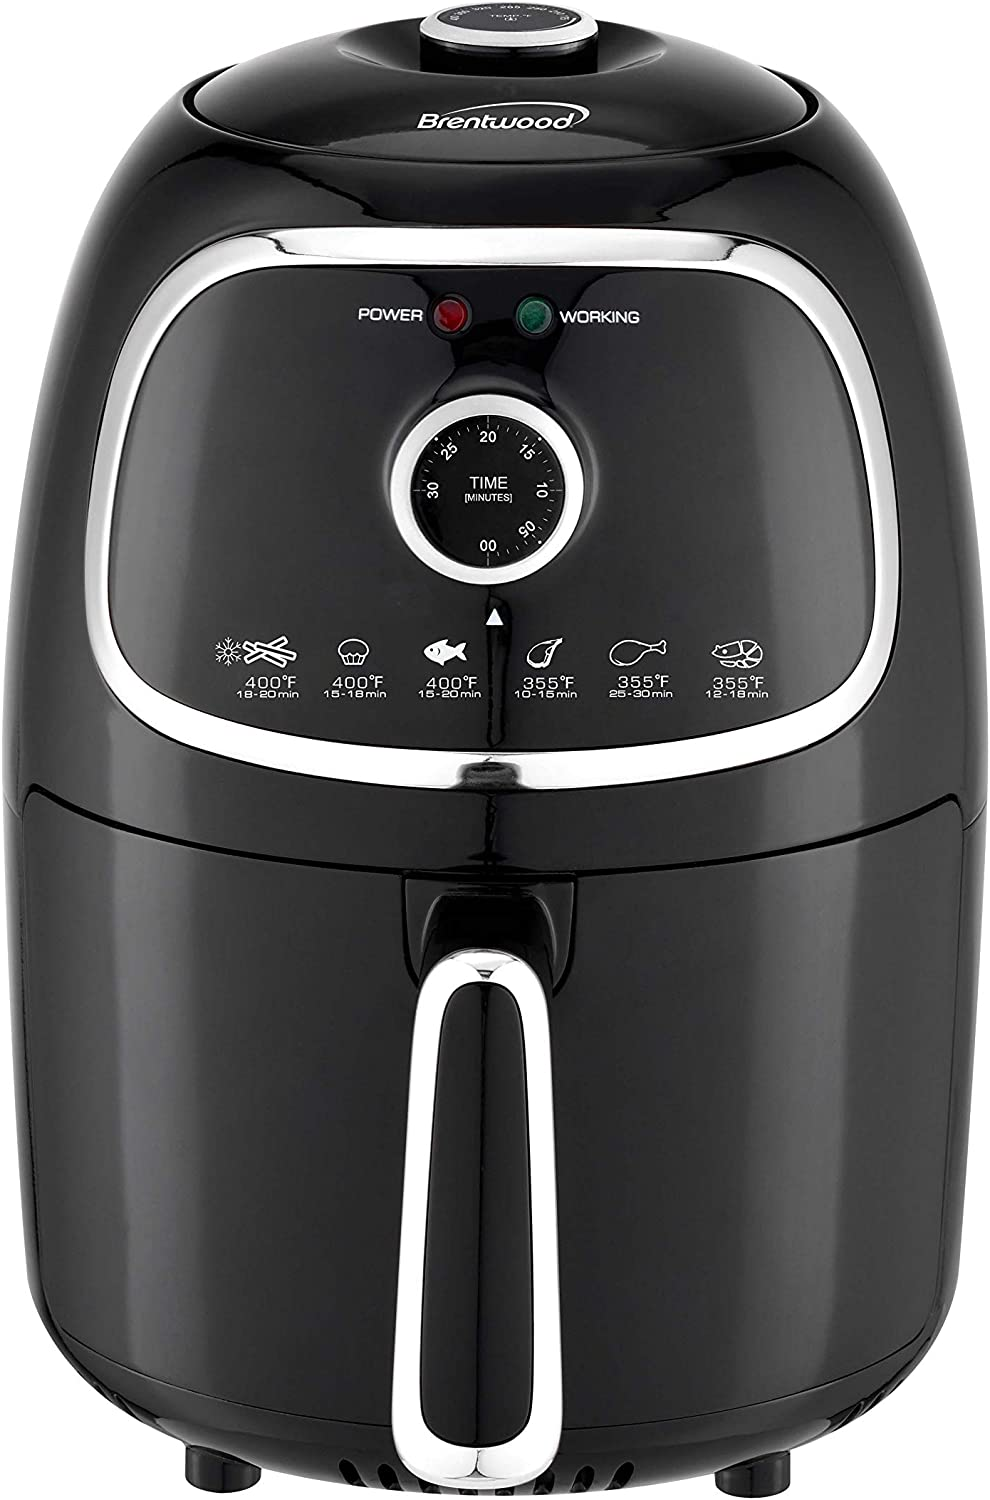 Brentwood Appliances AF202BK 2-Quart Small Electric Air Fryer with Timer and Temperature Control, Black